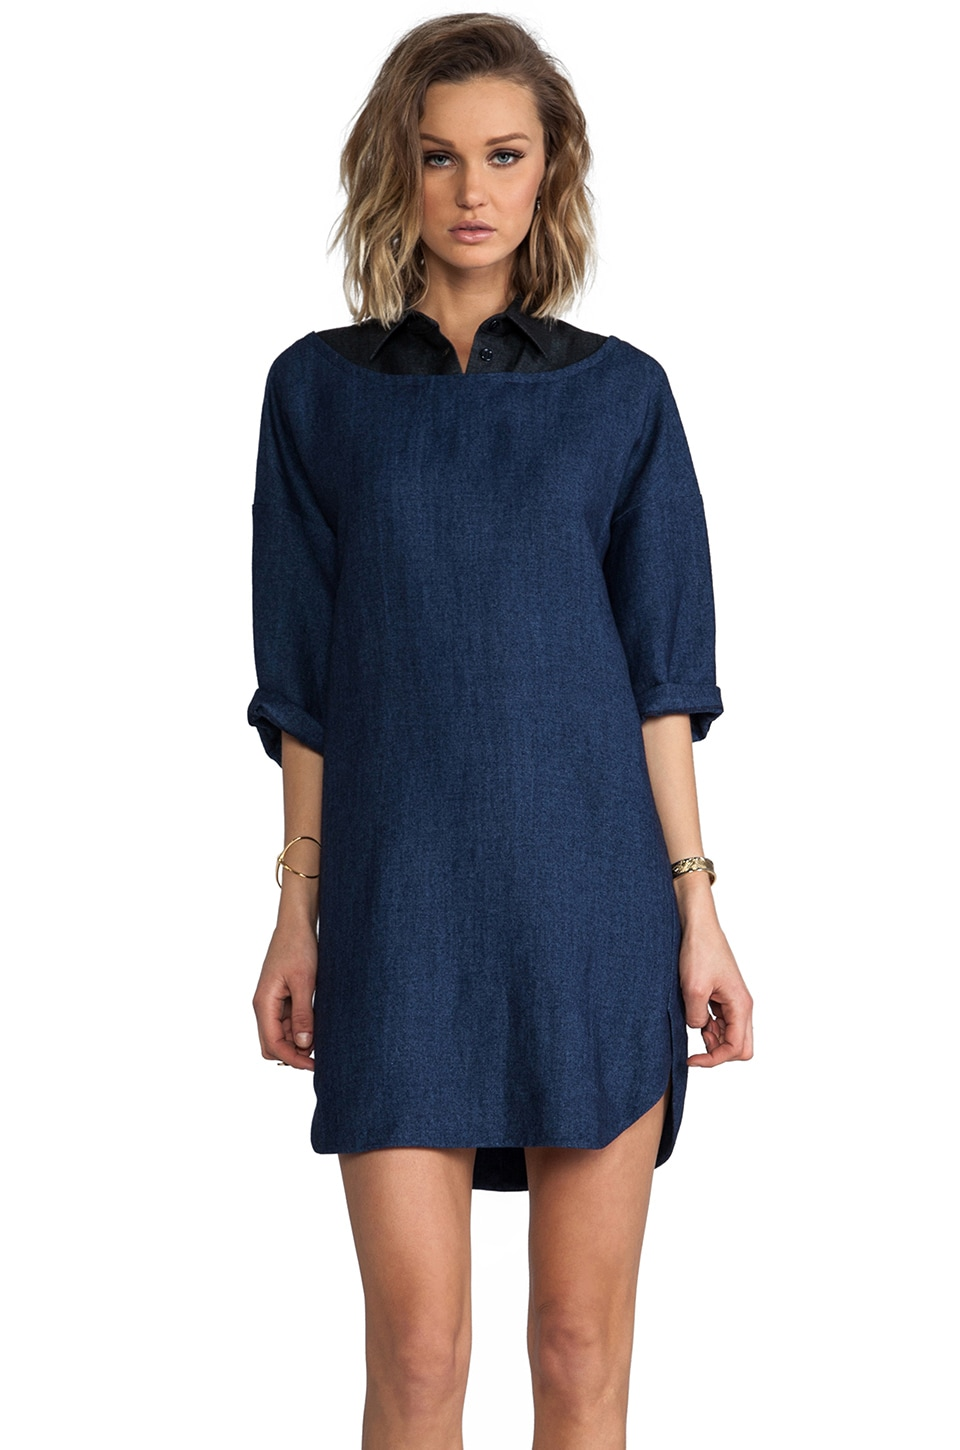 SONIA by Sonia Rykiel Denim Dress in Mix Bleu